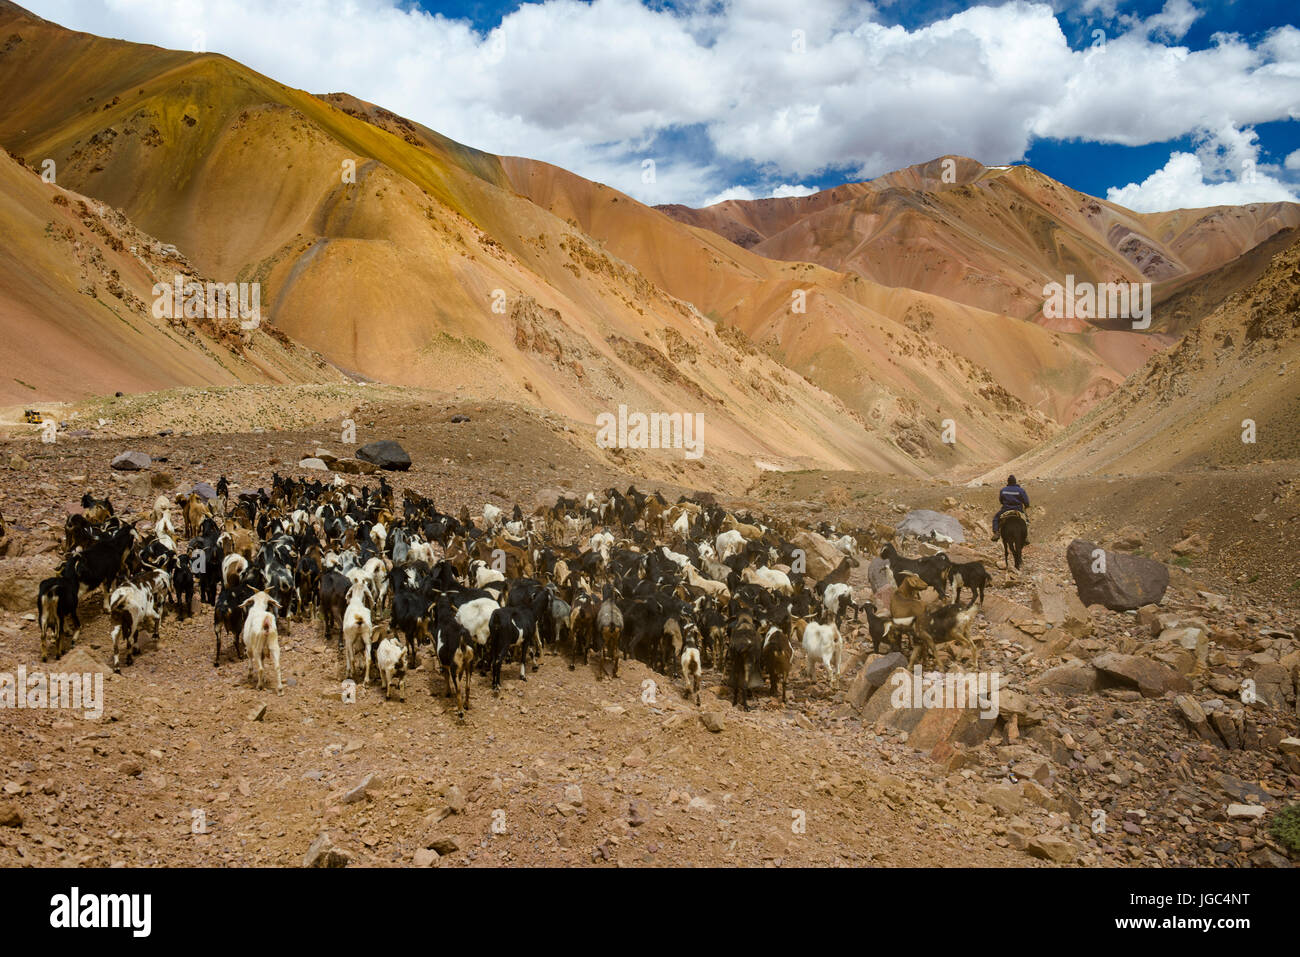 Goat herds and herder,Agua Negra pass, Chile-Argentina - Stock Image